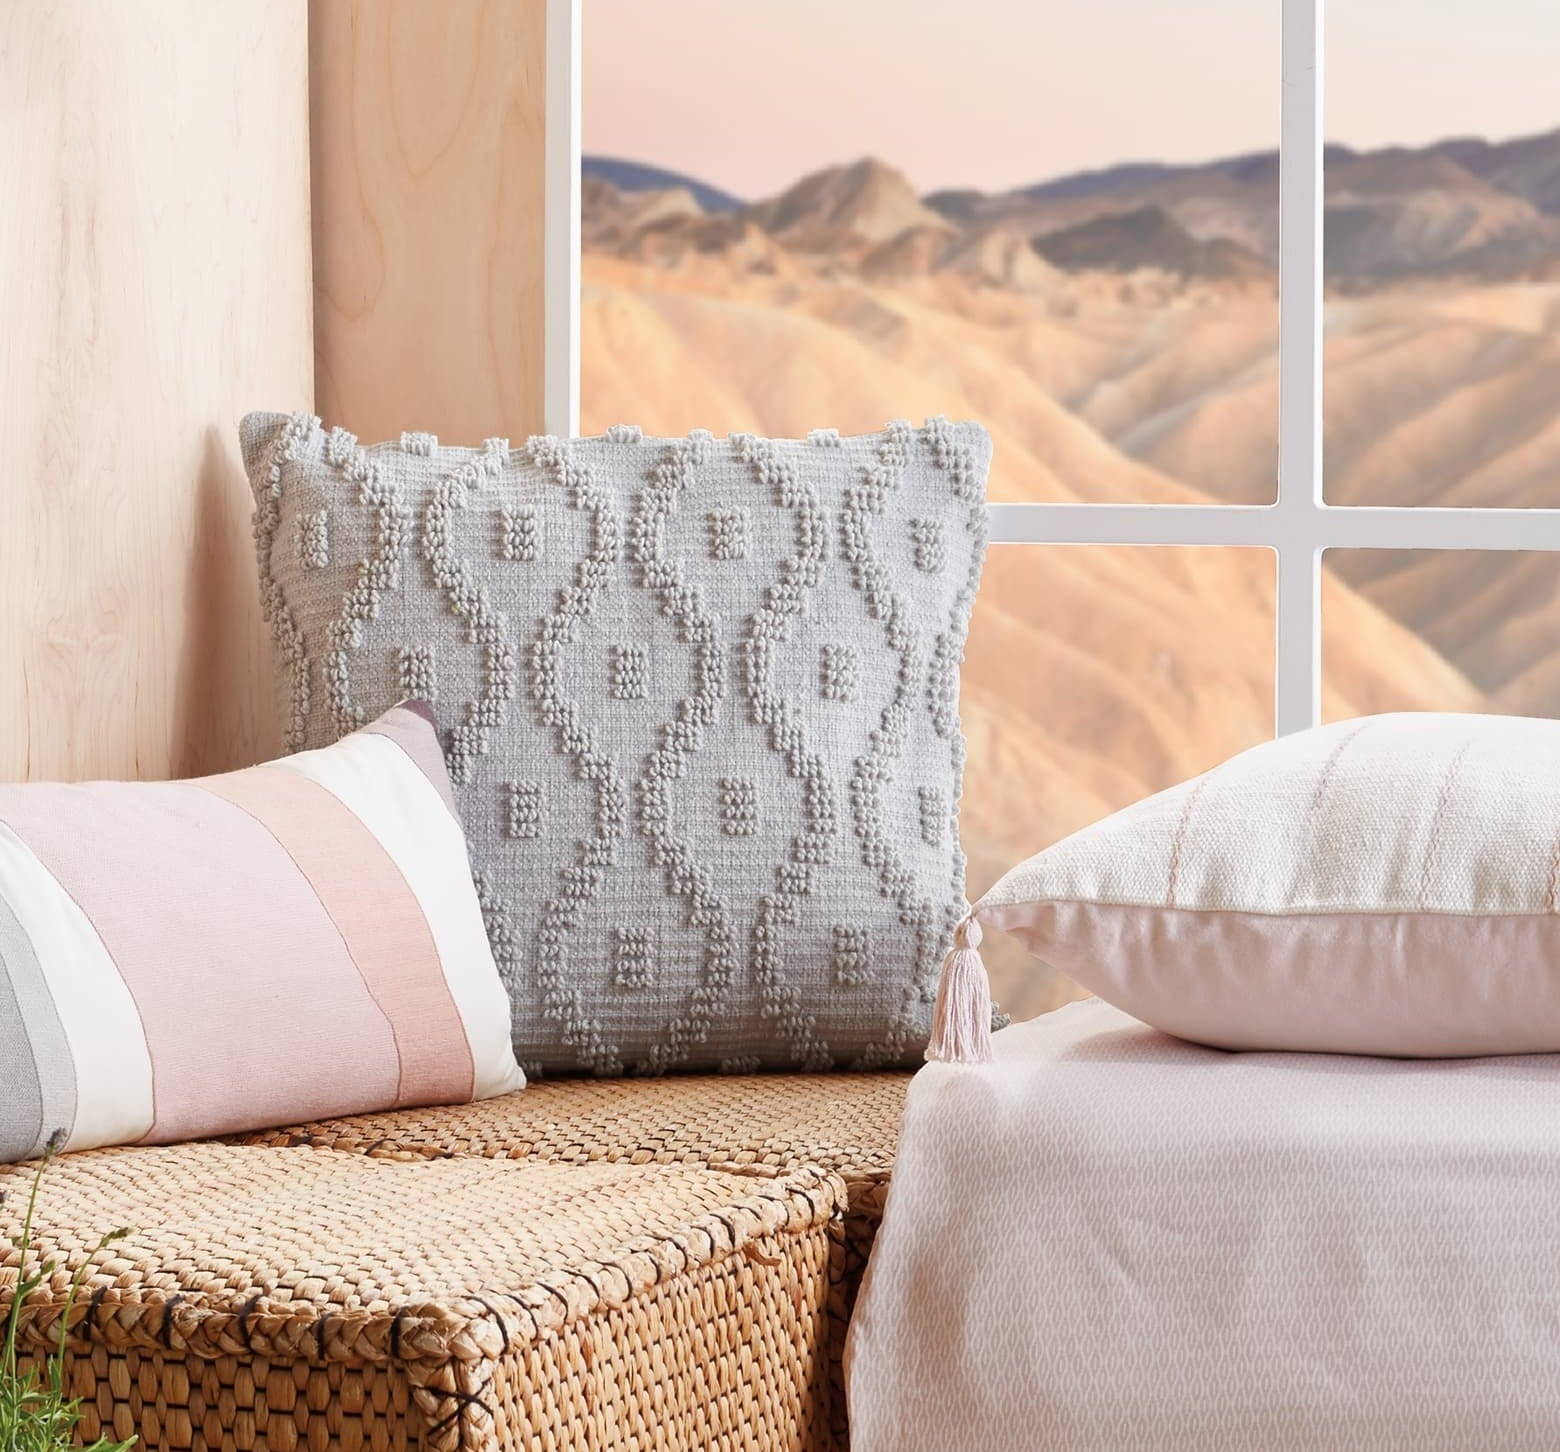 The grey throw pillow with embroidered pattern on the front sitting on a bench